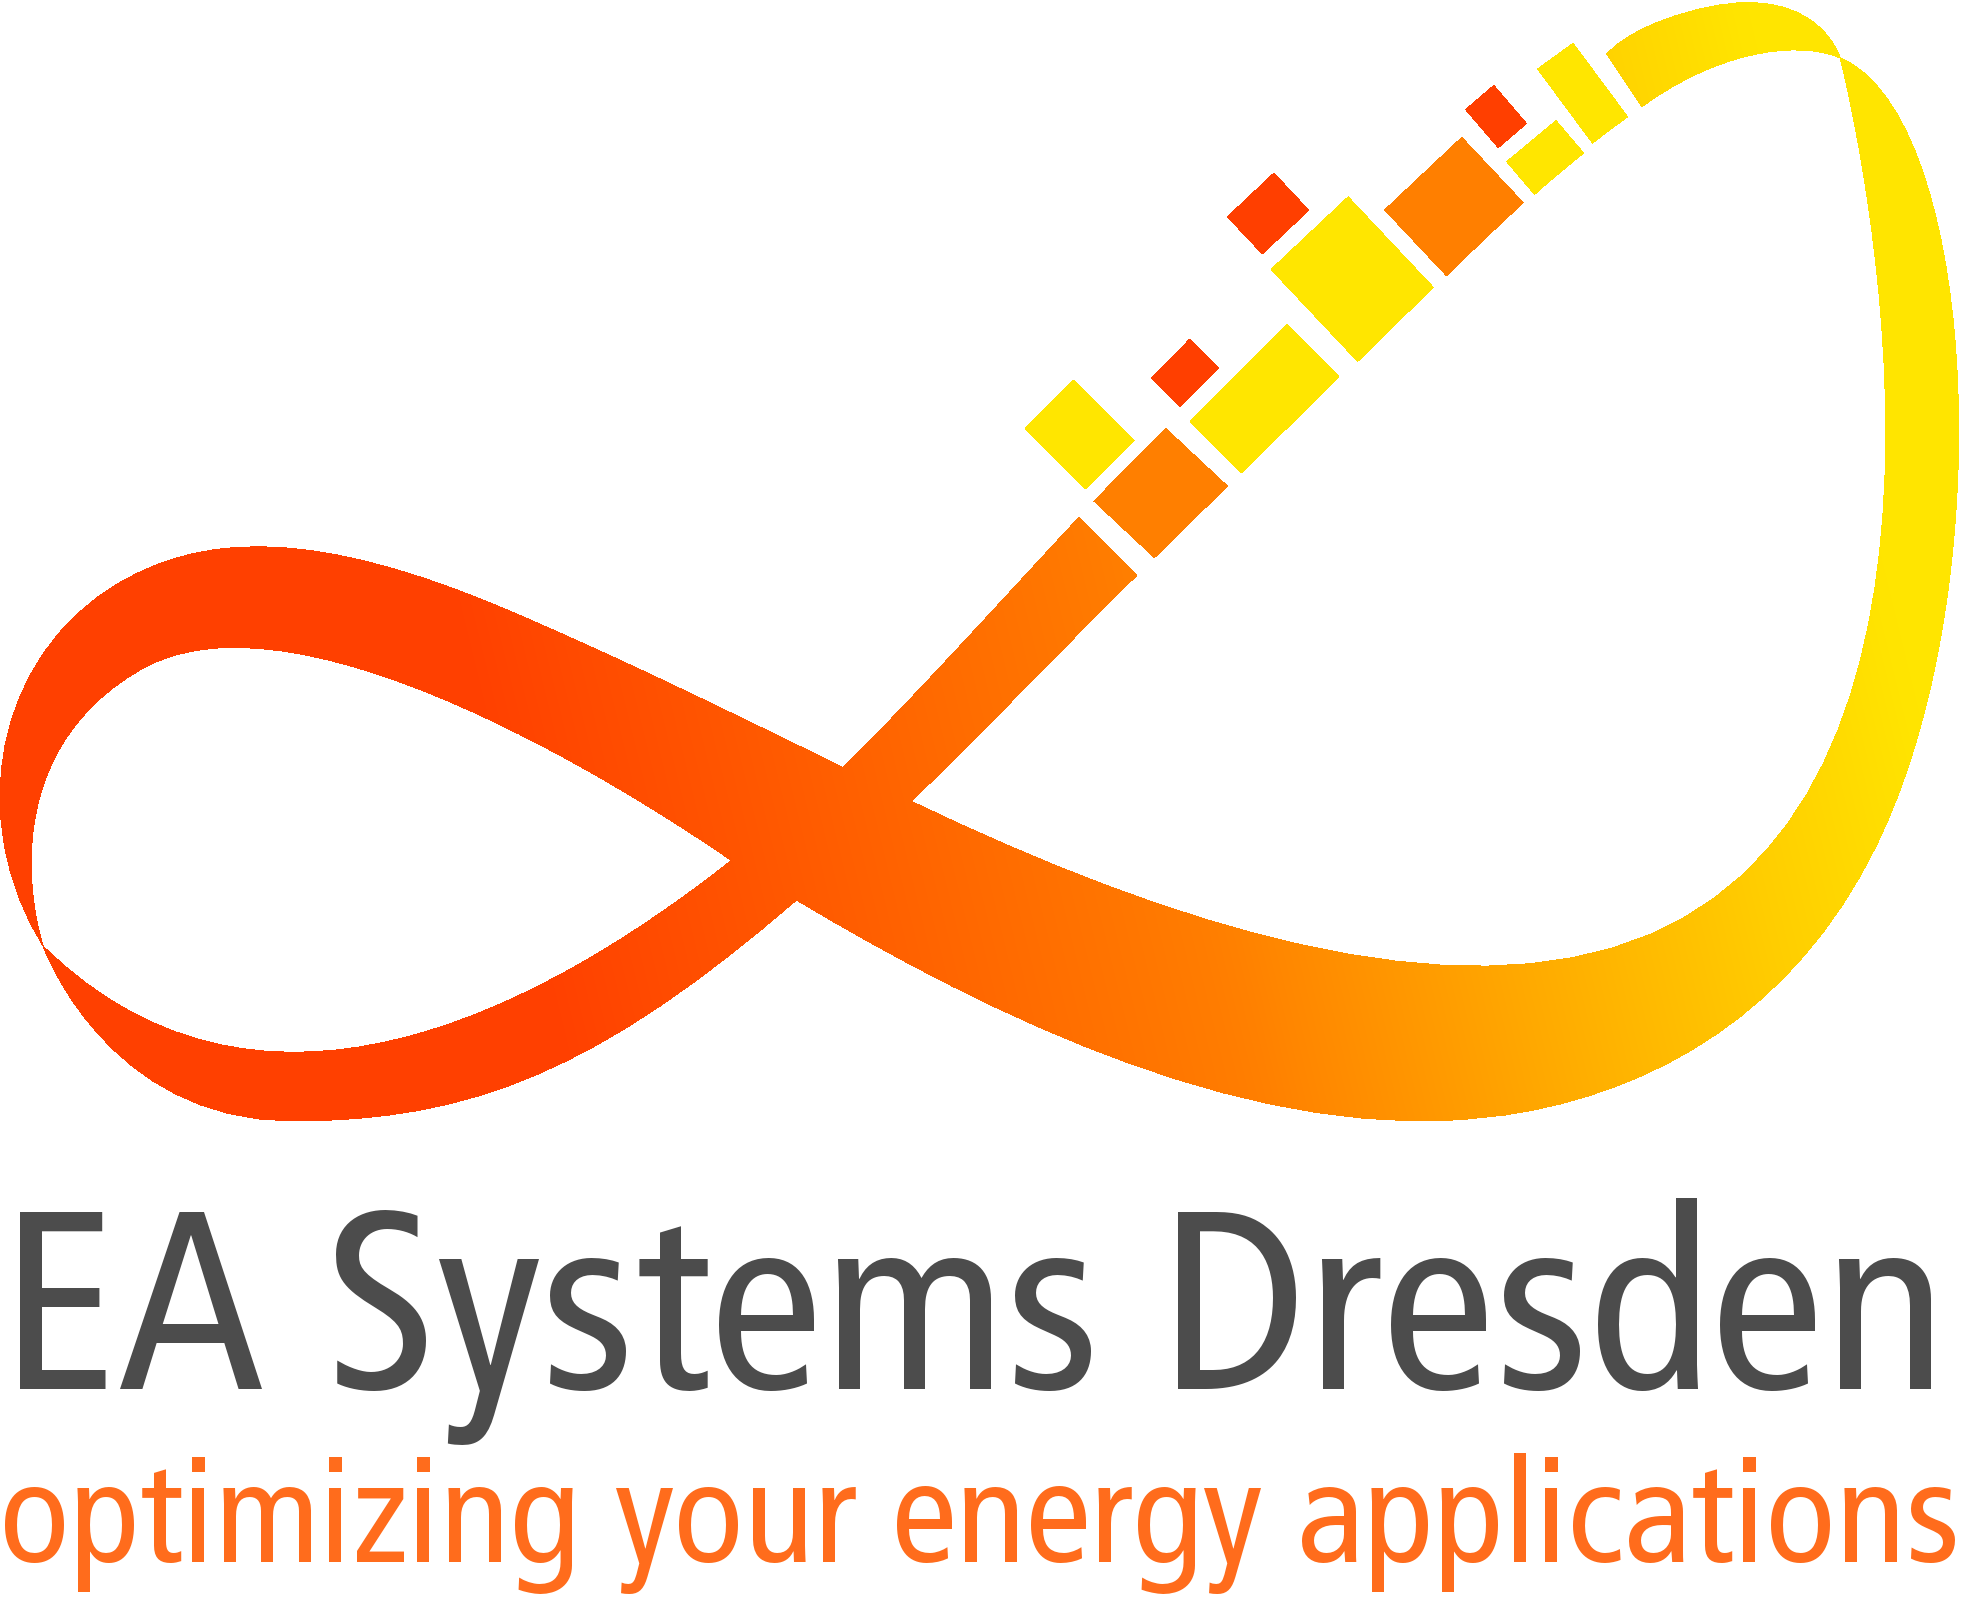 EA Systems Dresden